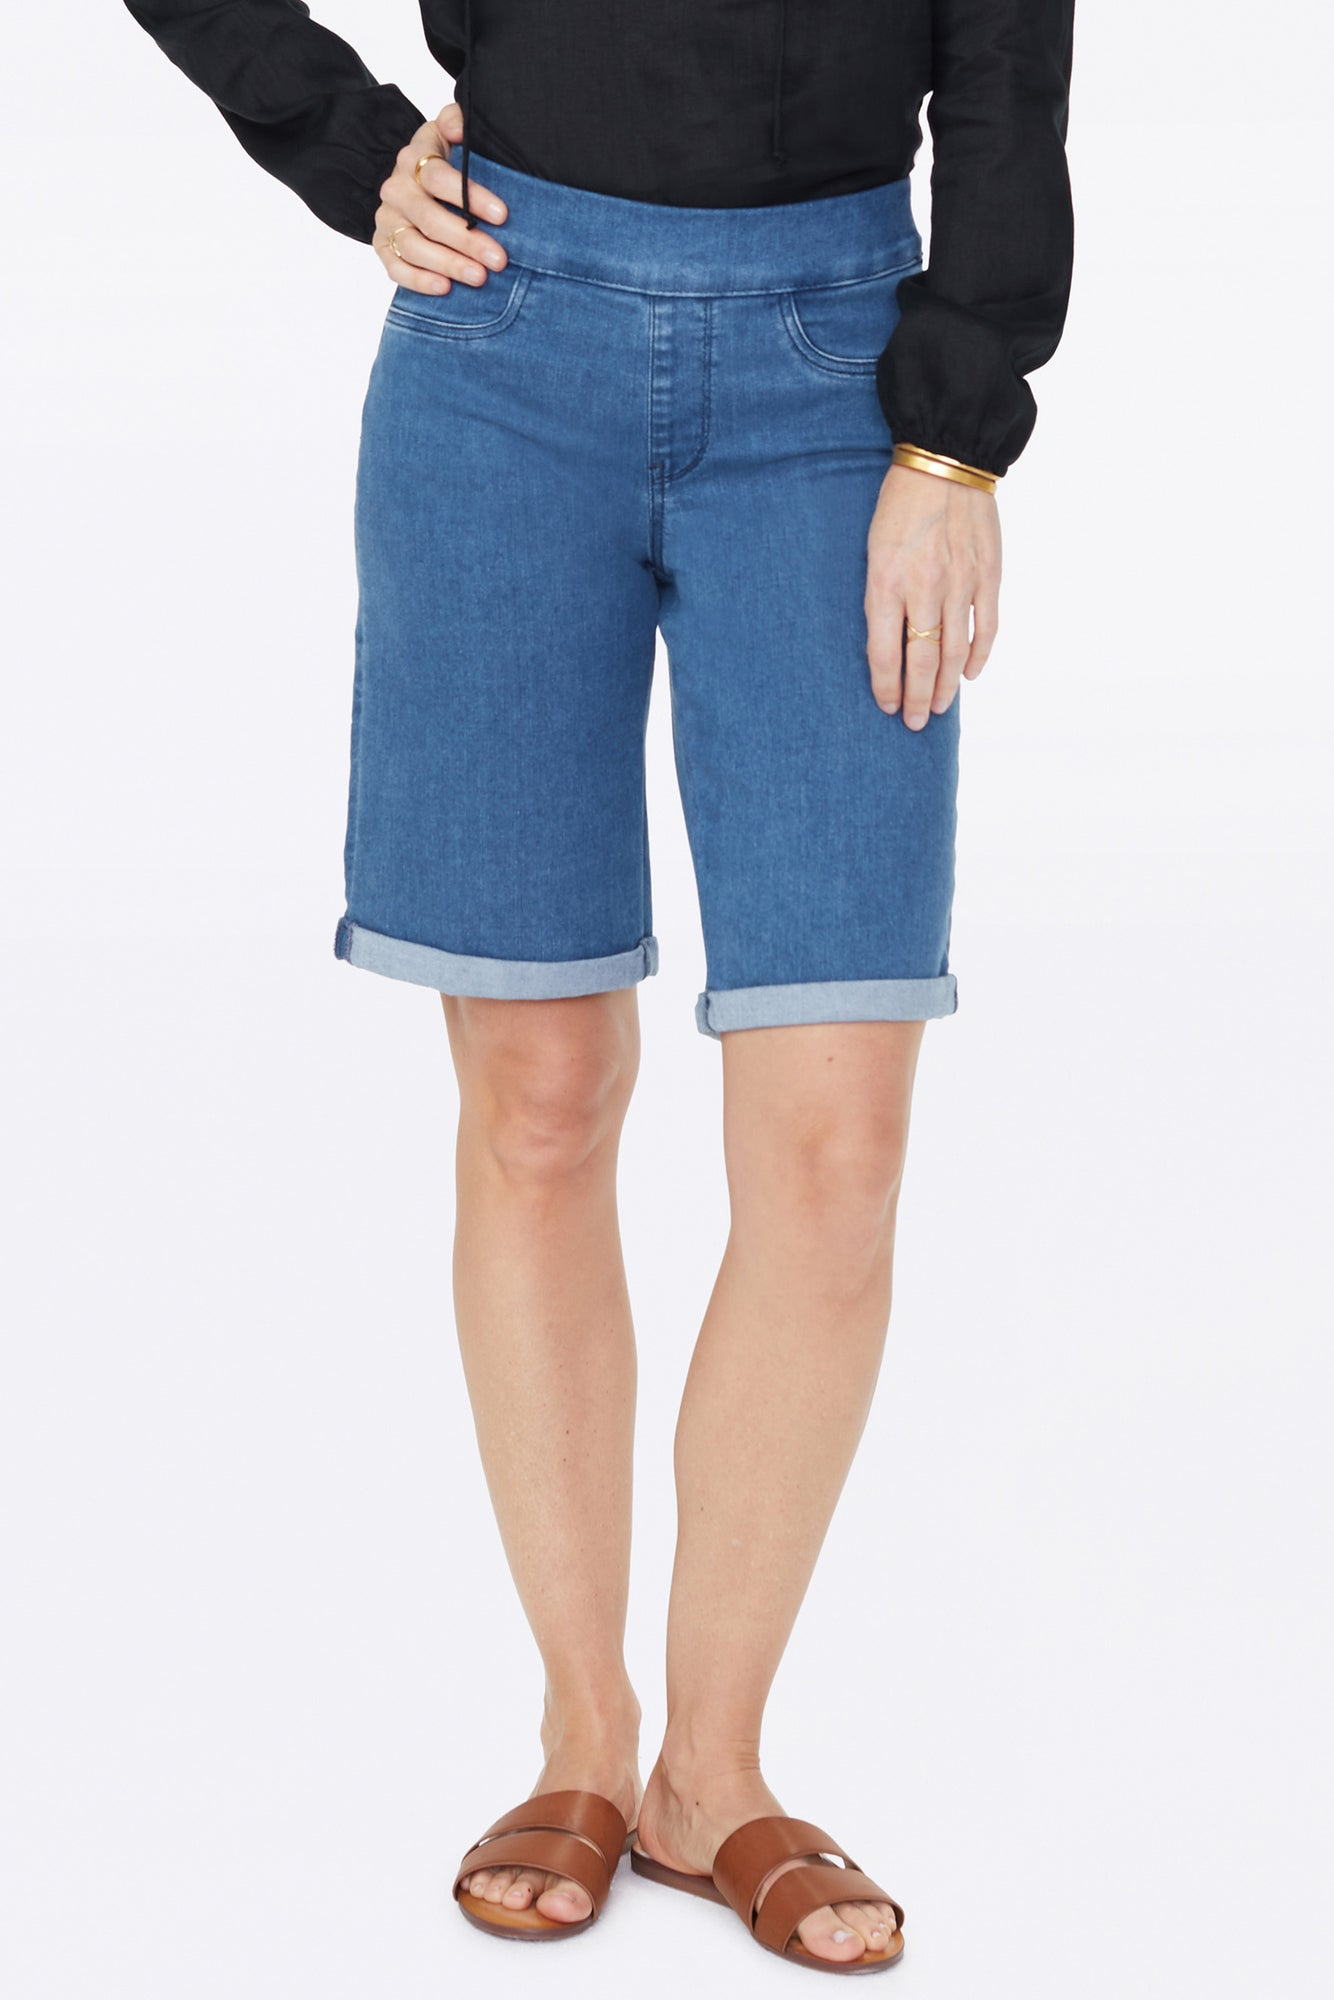 11 Inch Pull-On Jean Shorts - PERALTA